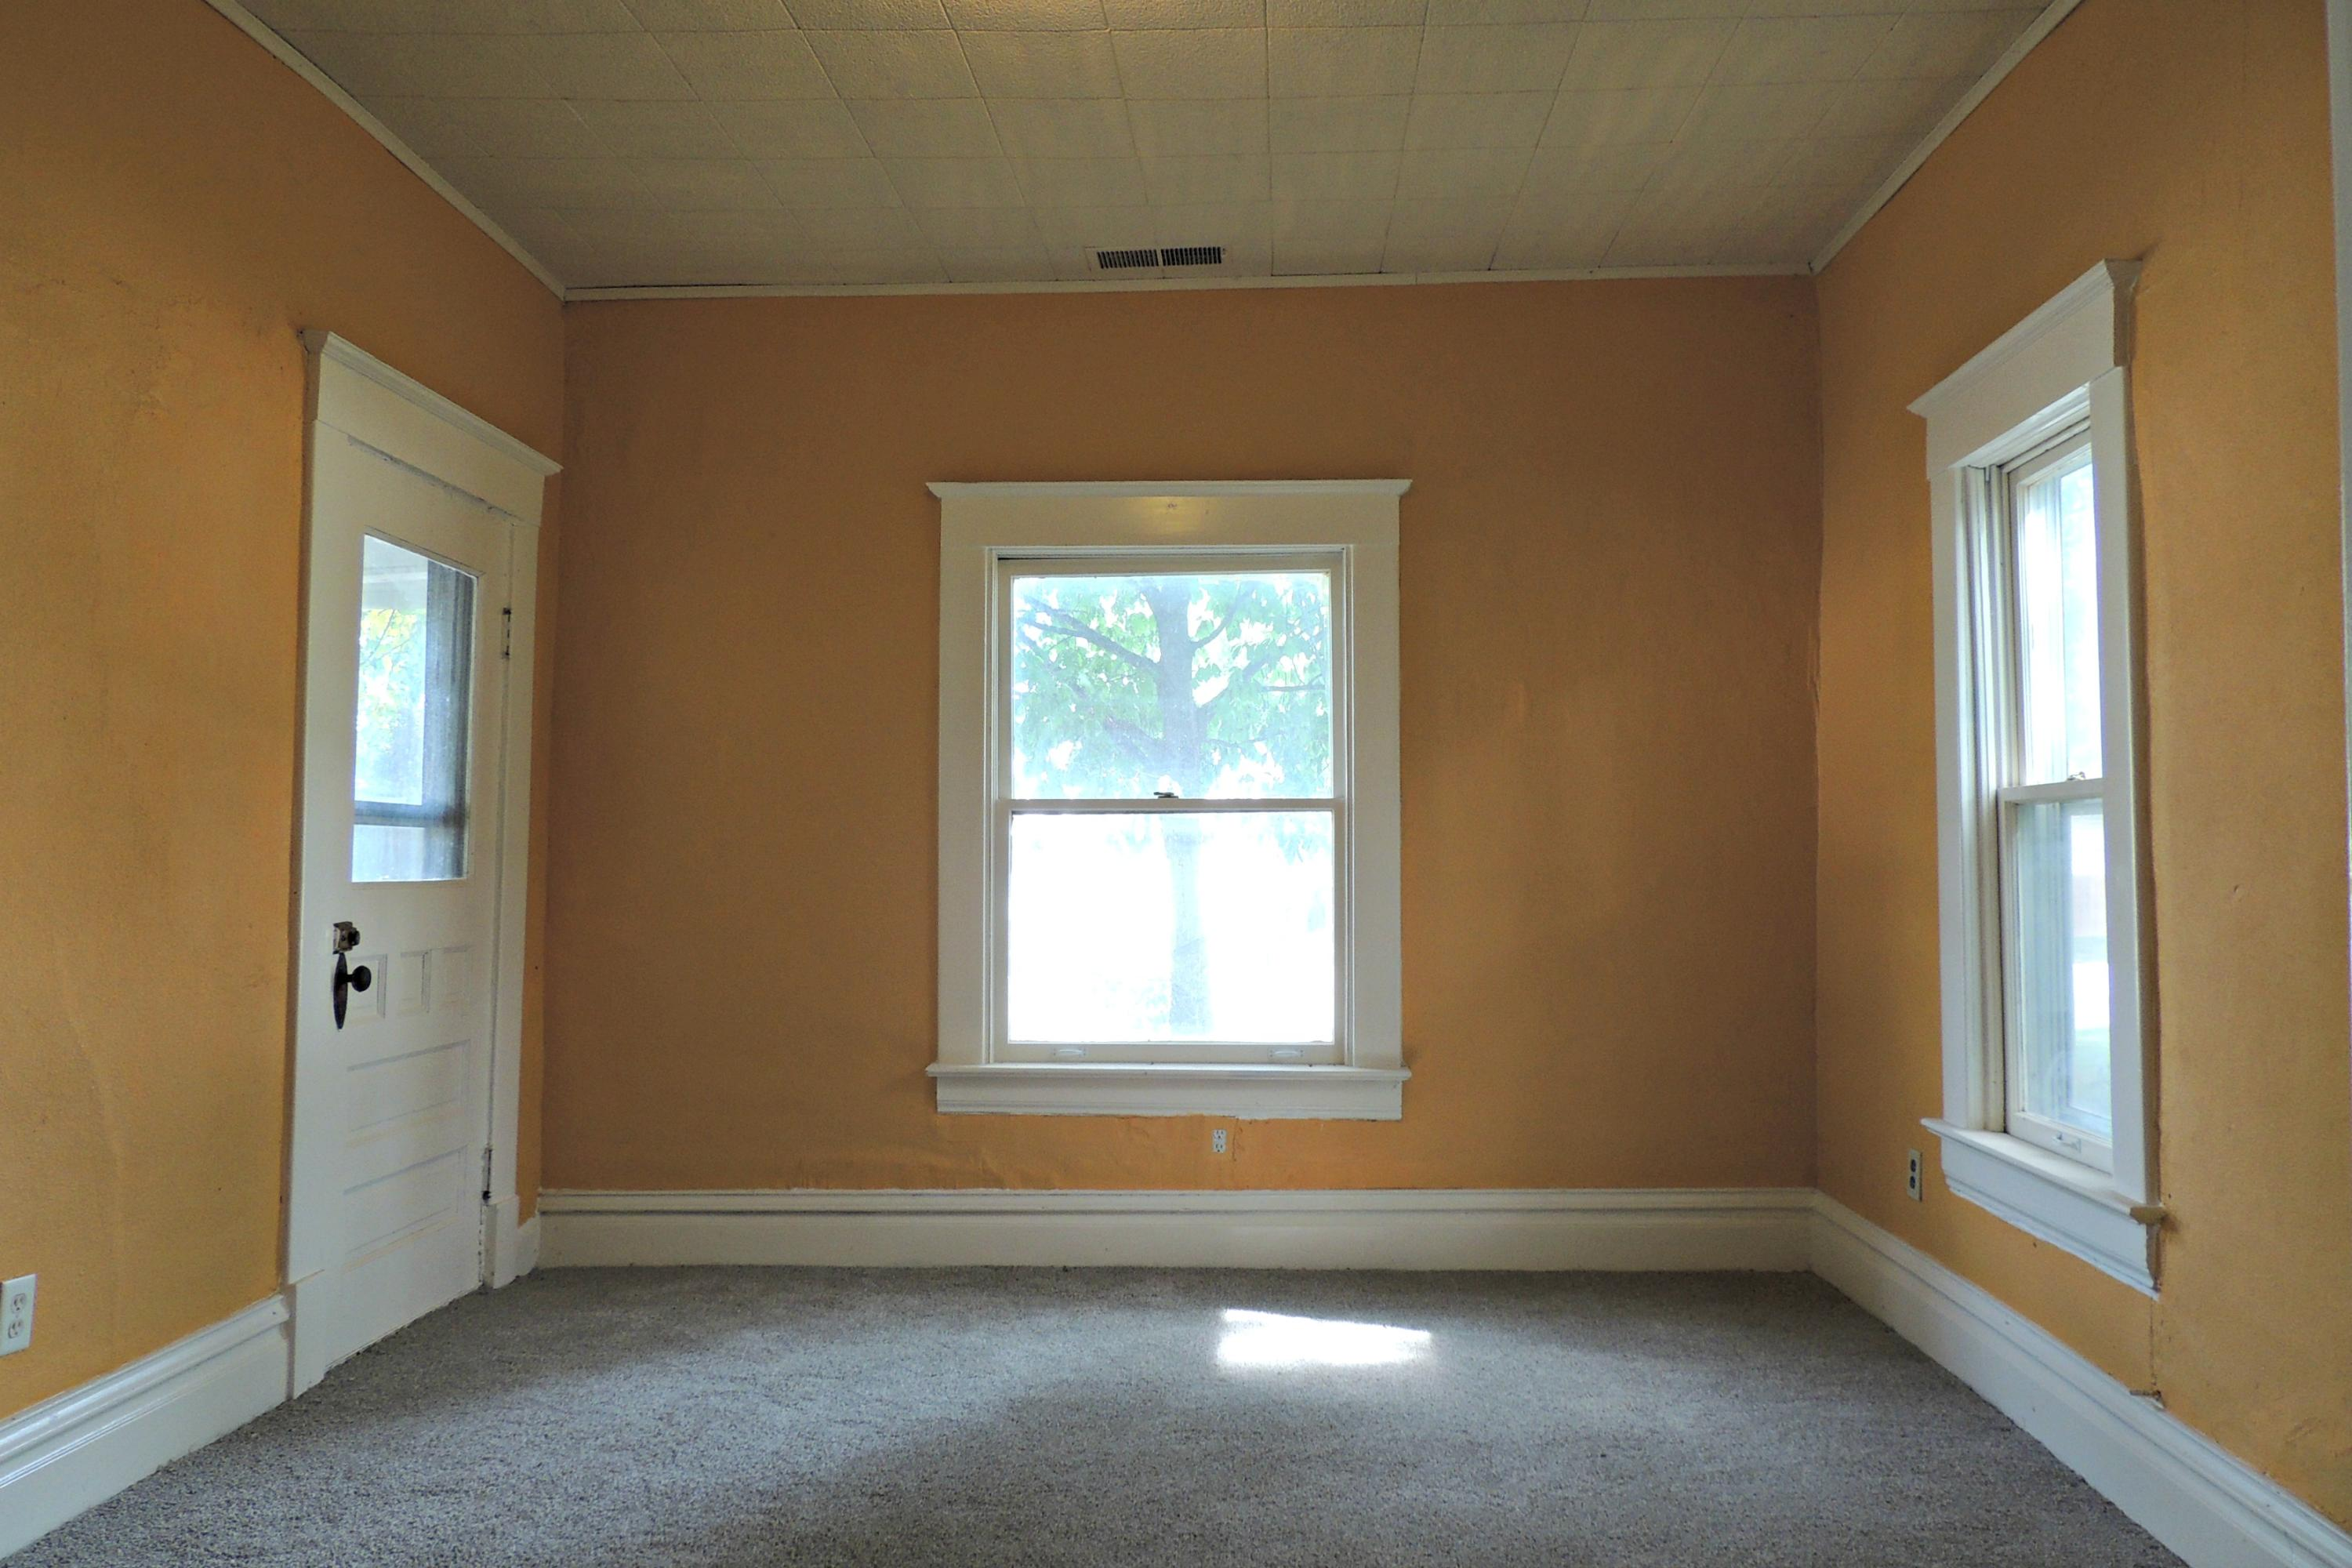 816 E 4TH ST, Maryville, Missouri 64468, 2 Bedrooms Bedrooms, ,1 BathroomBathrooms,Residential,4TH,4201